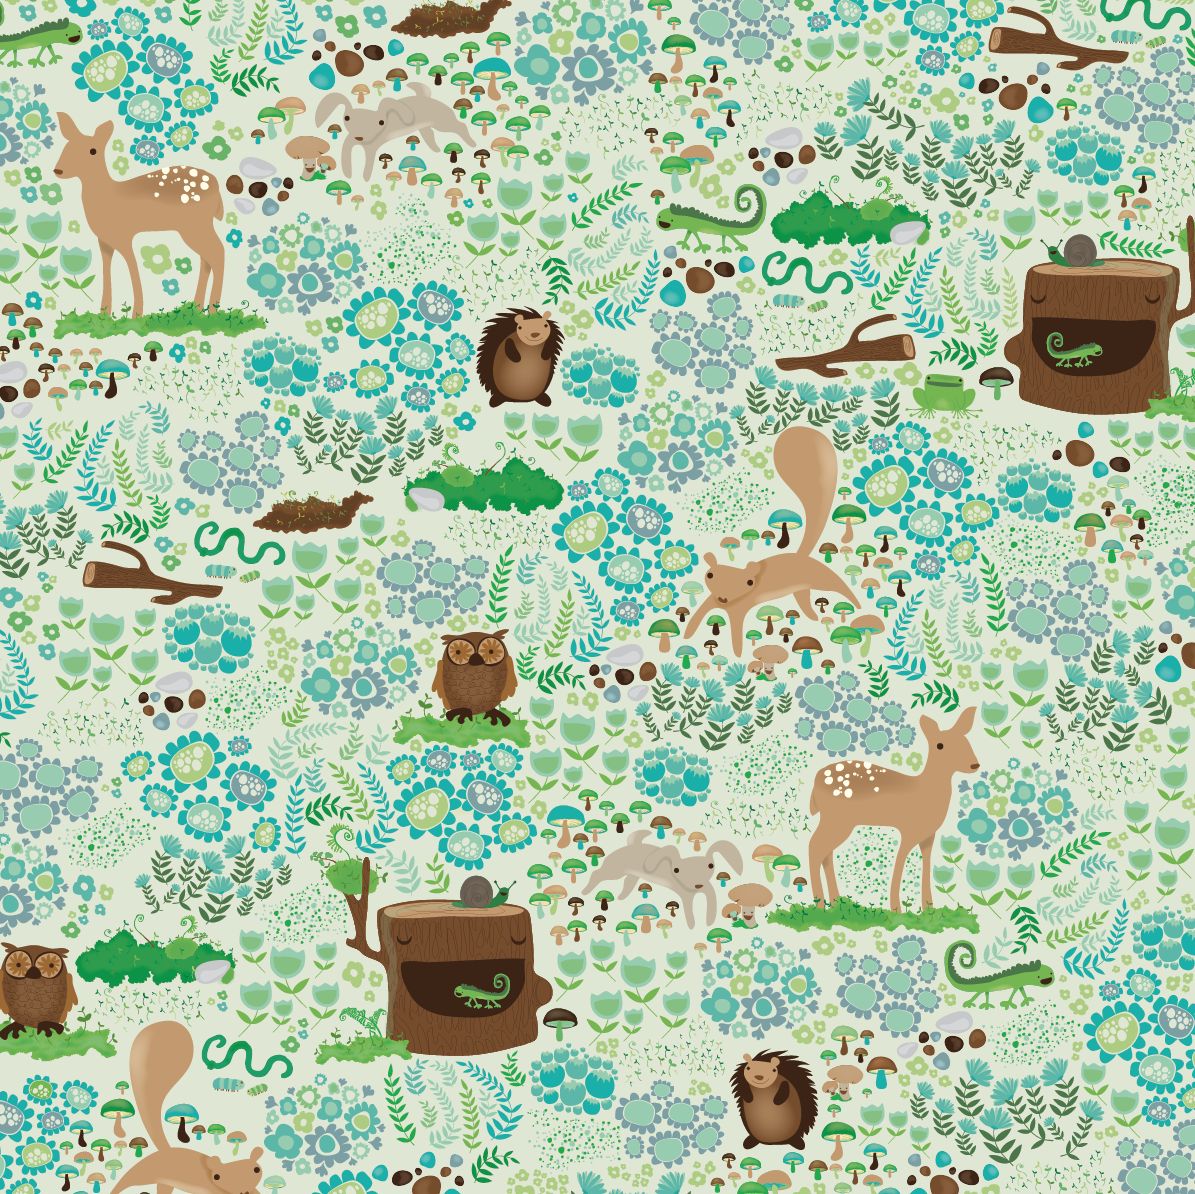 design surface pattern deer squirel owl fern flowers bunny nonna design illustration